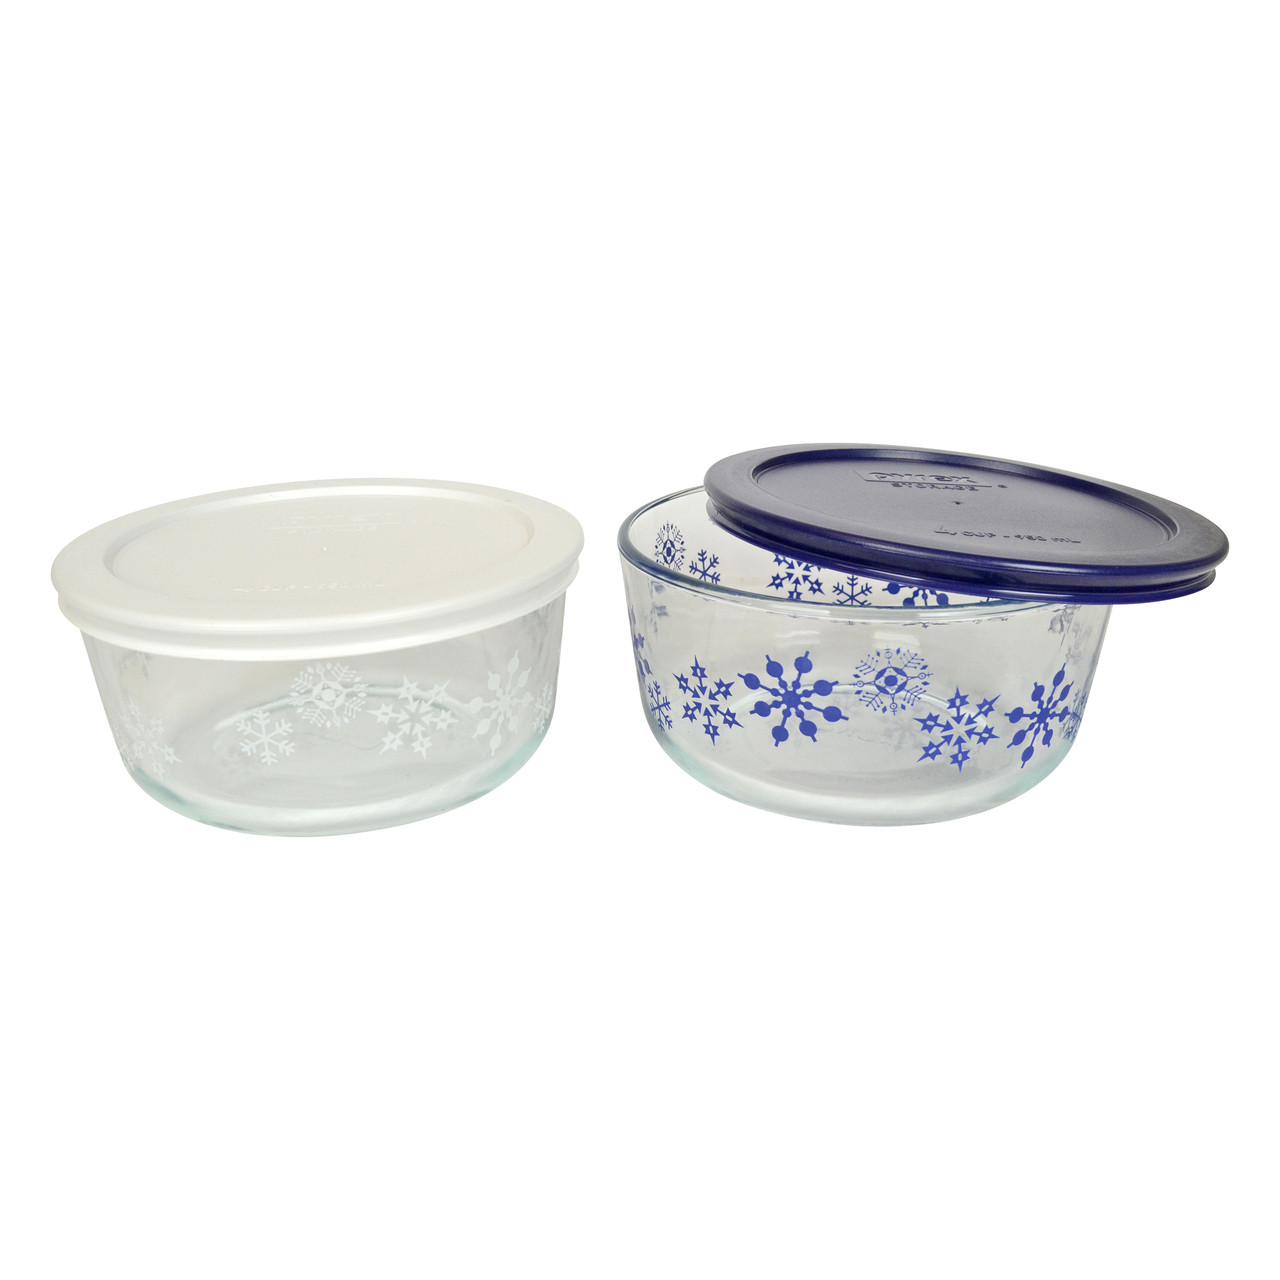 Decorative Glass Bowls Pyrex Simply Store 4 Cup Blue White Sowflake Glass Bowls W Plastic Lids 2 Pack